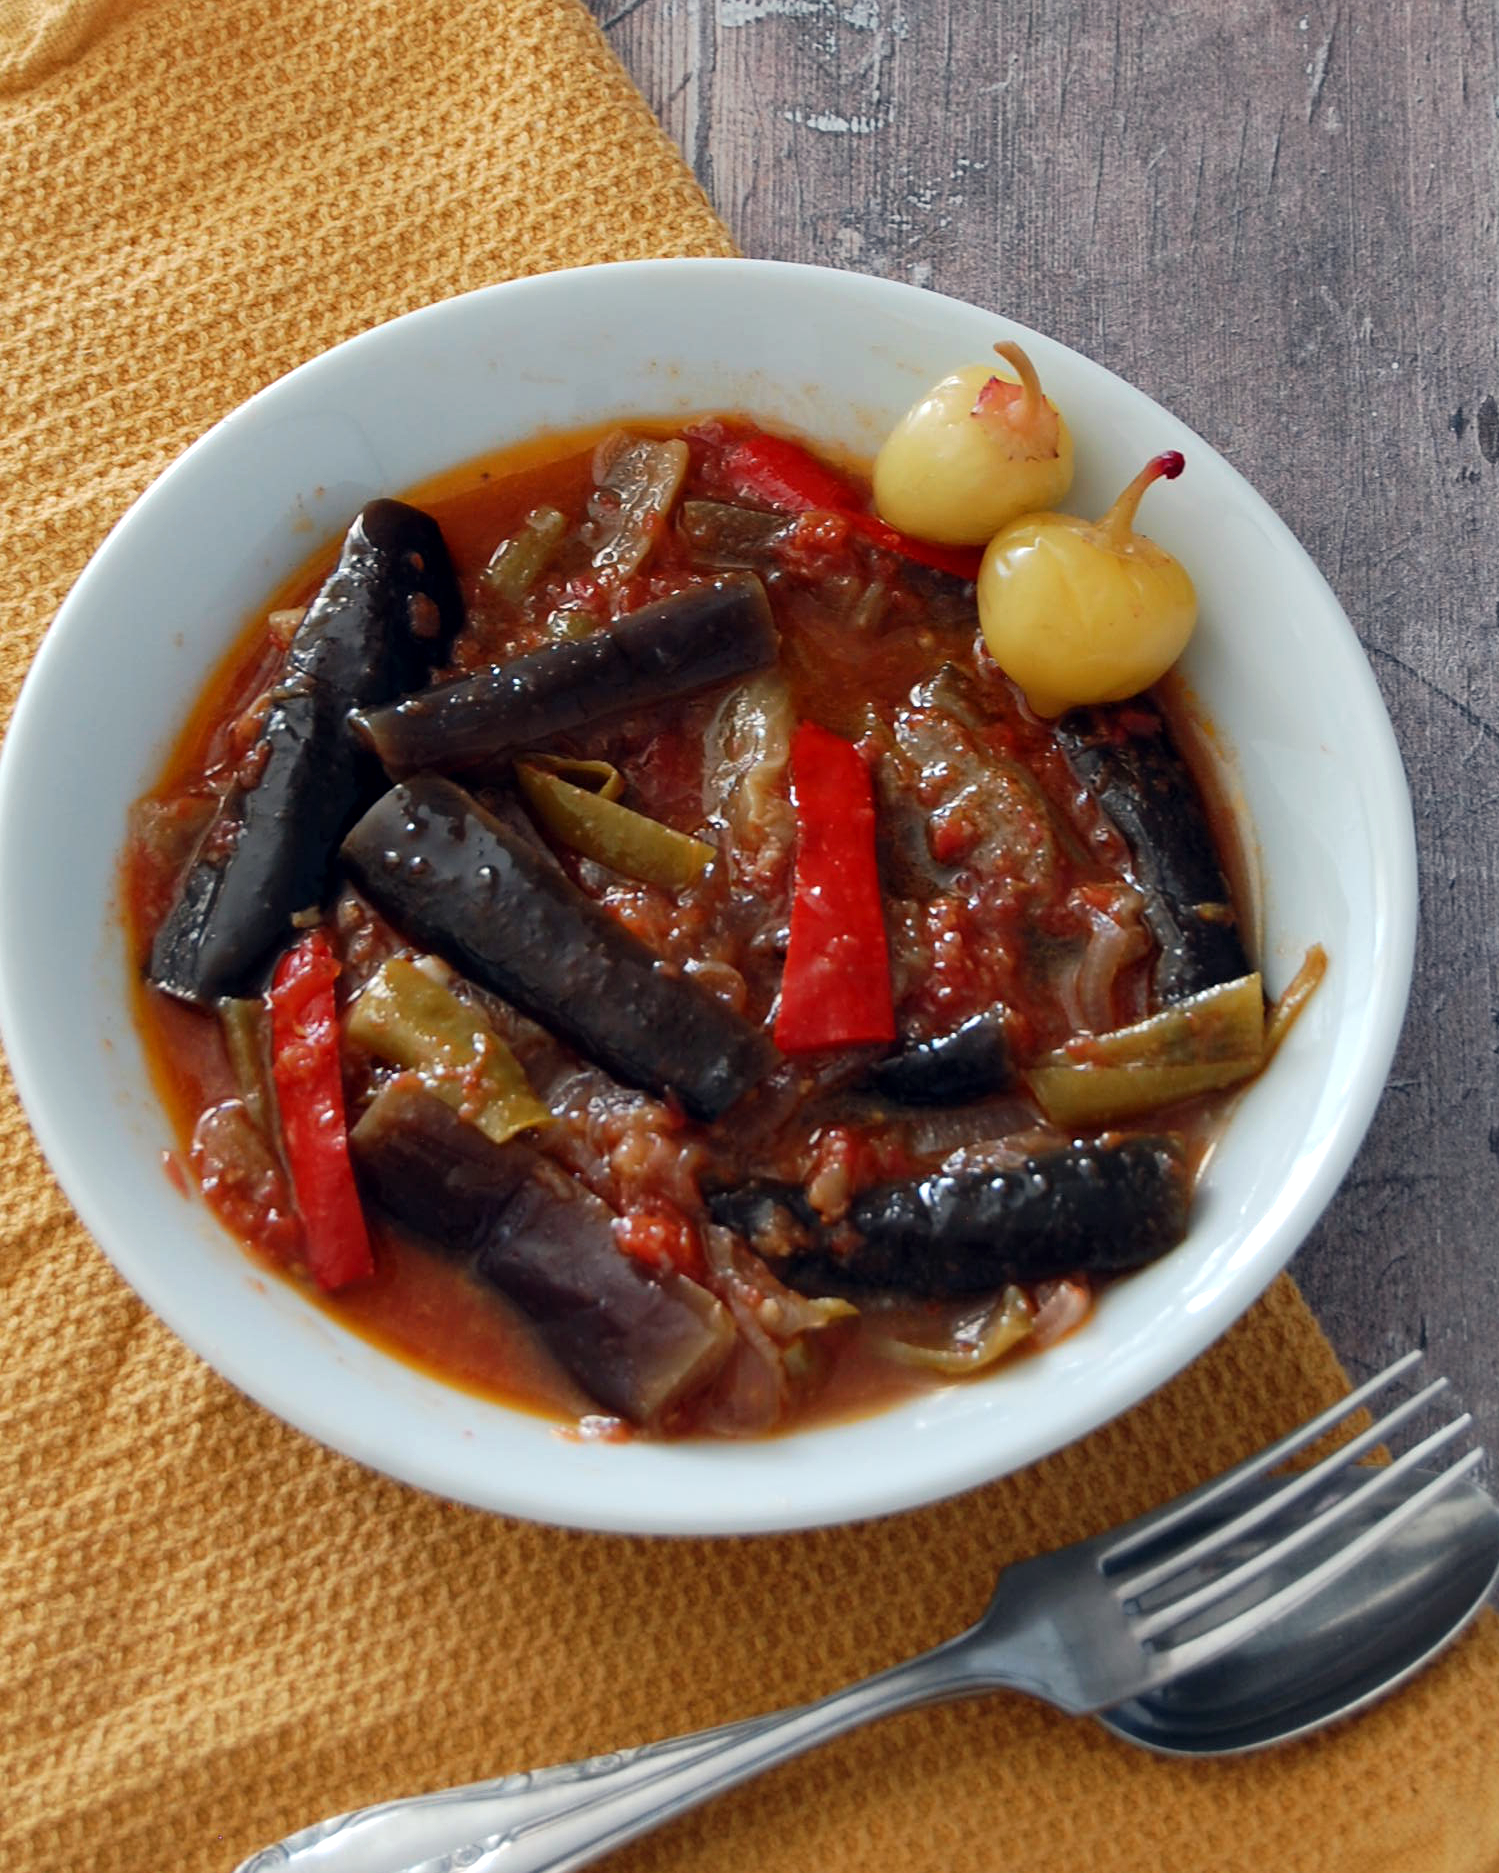 White bowl of aubergine and pepper stew. Two small pickled peppers and yellow hanky.